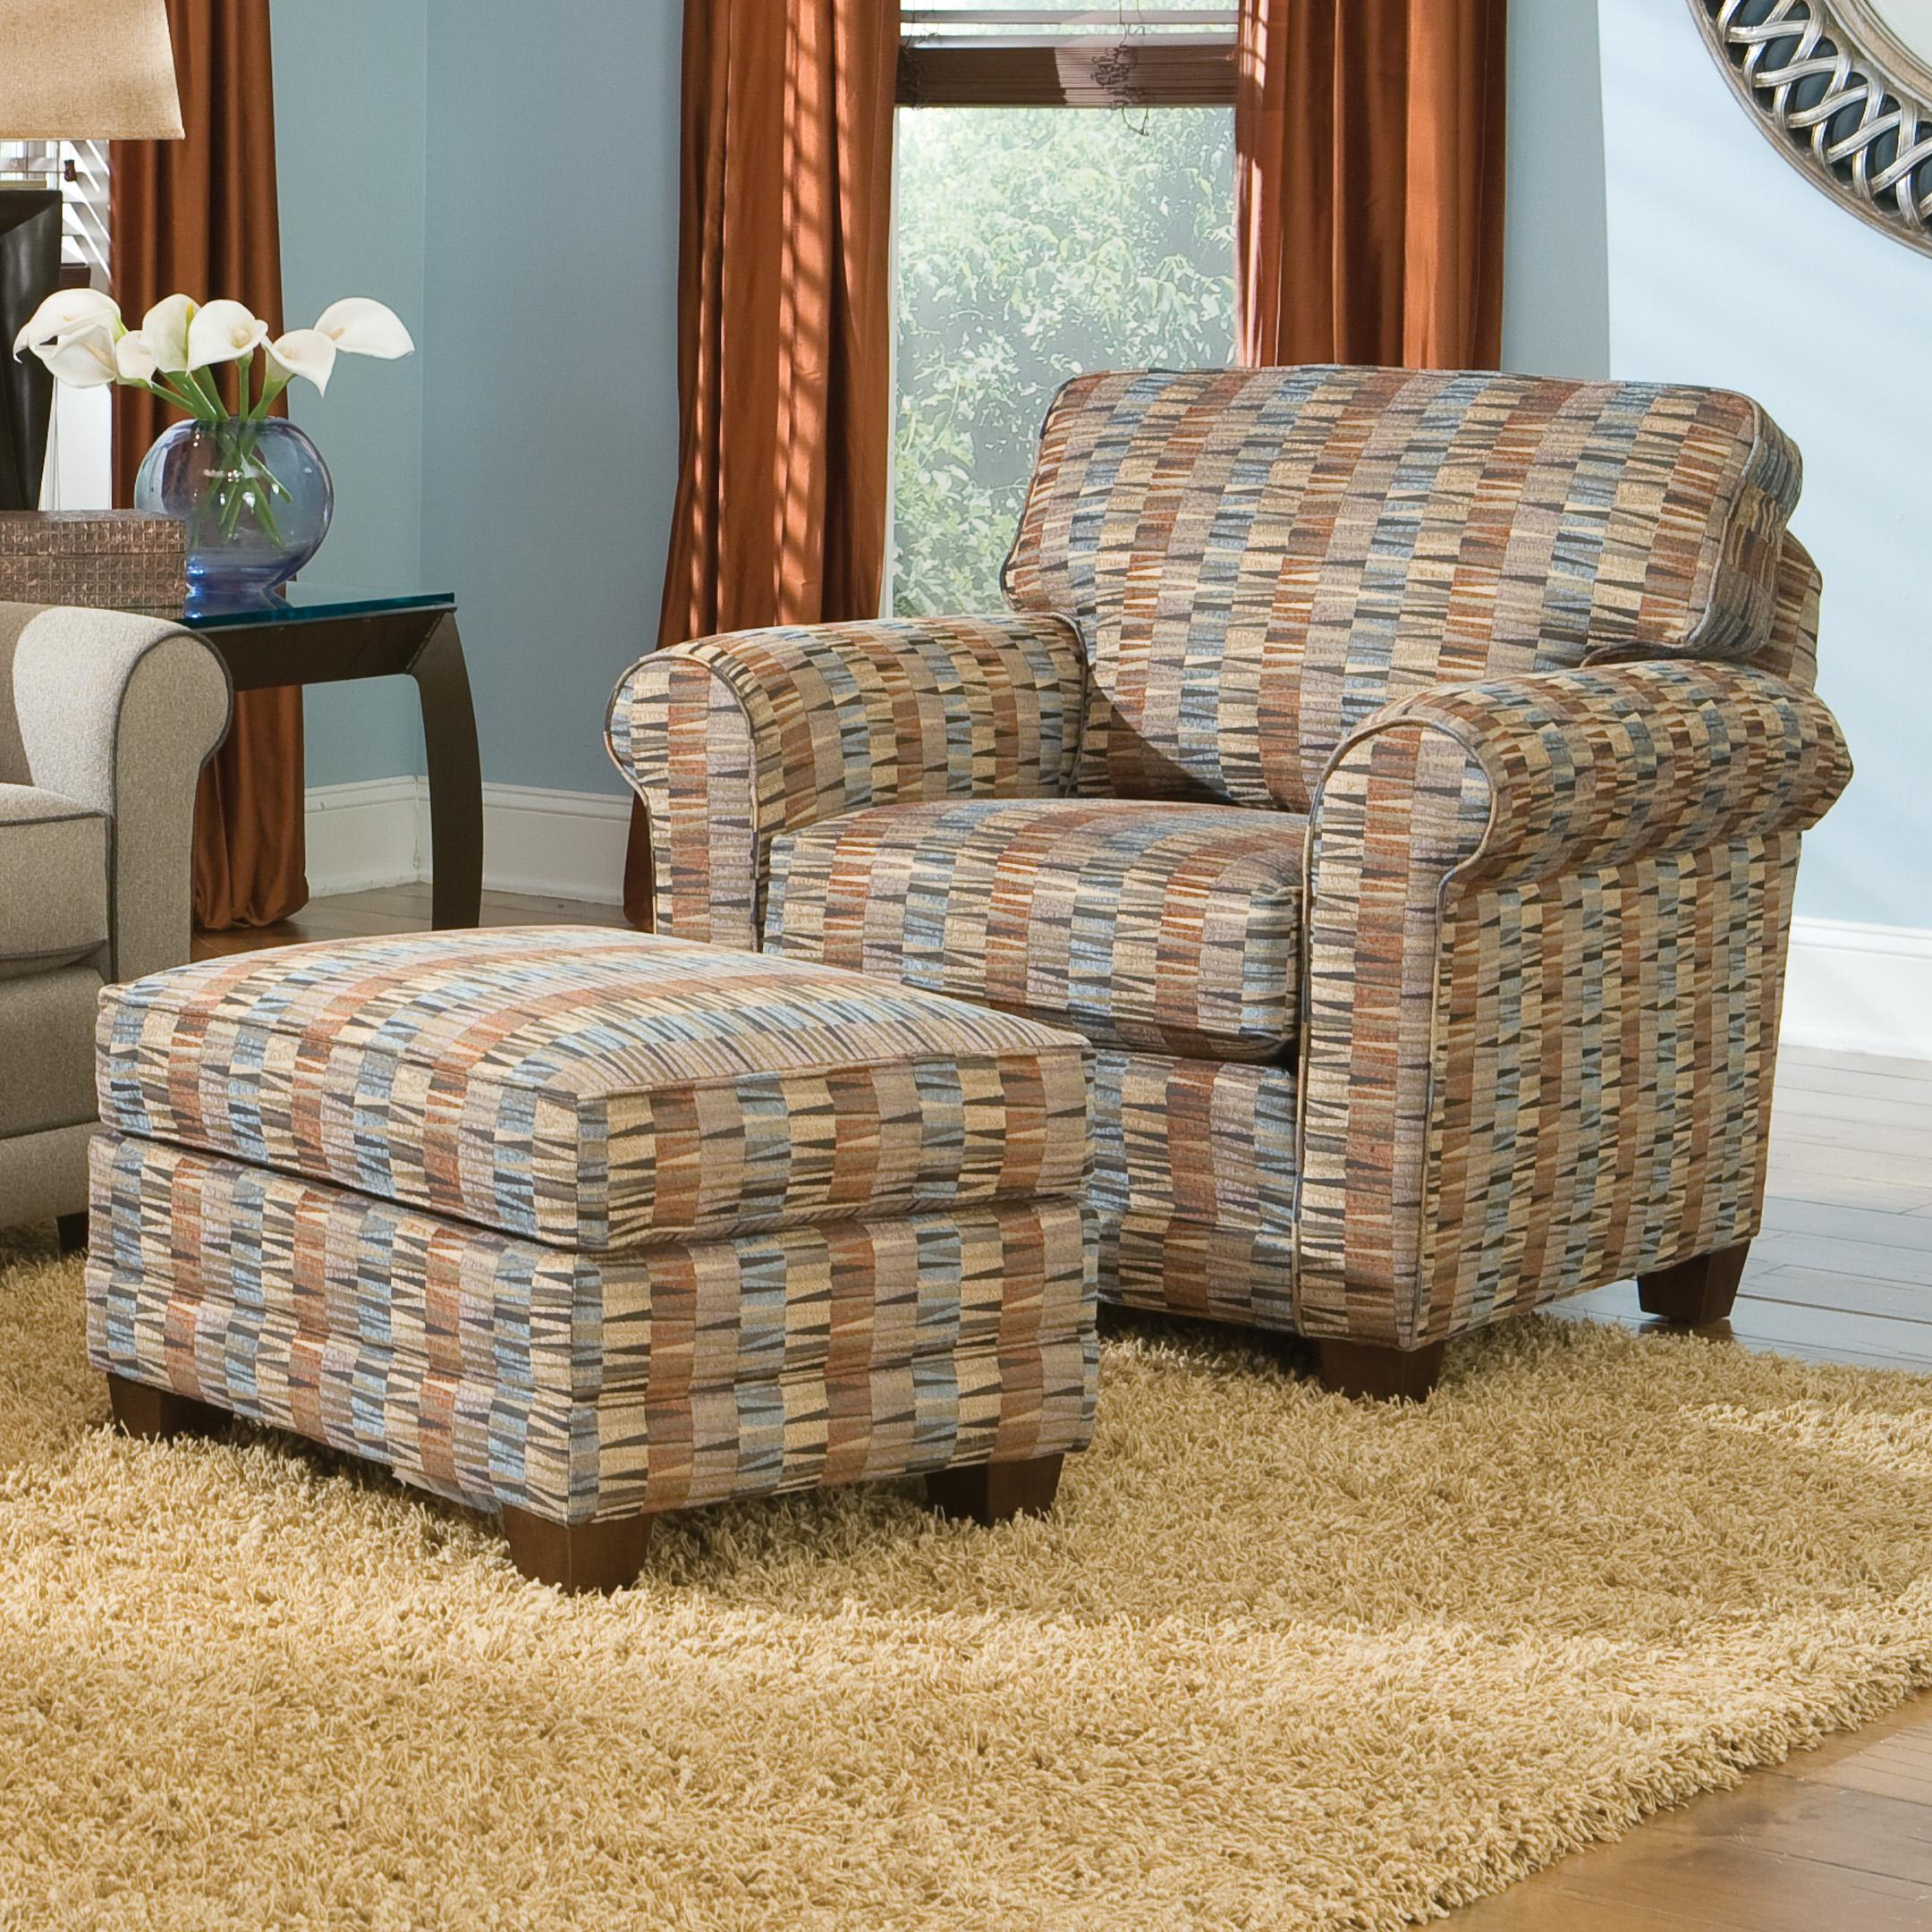 366 Casual Chair and Ottoman by Smith Brothers at Westrich Furniture & Appliances